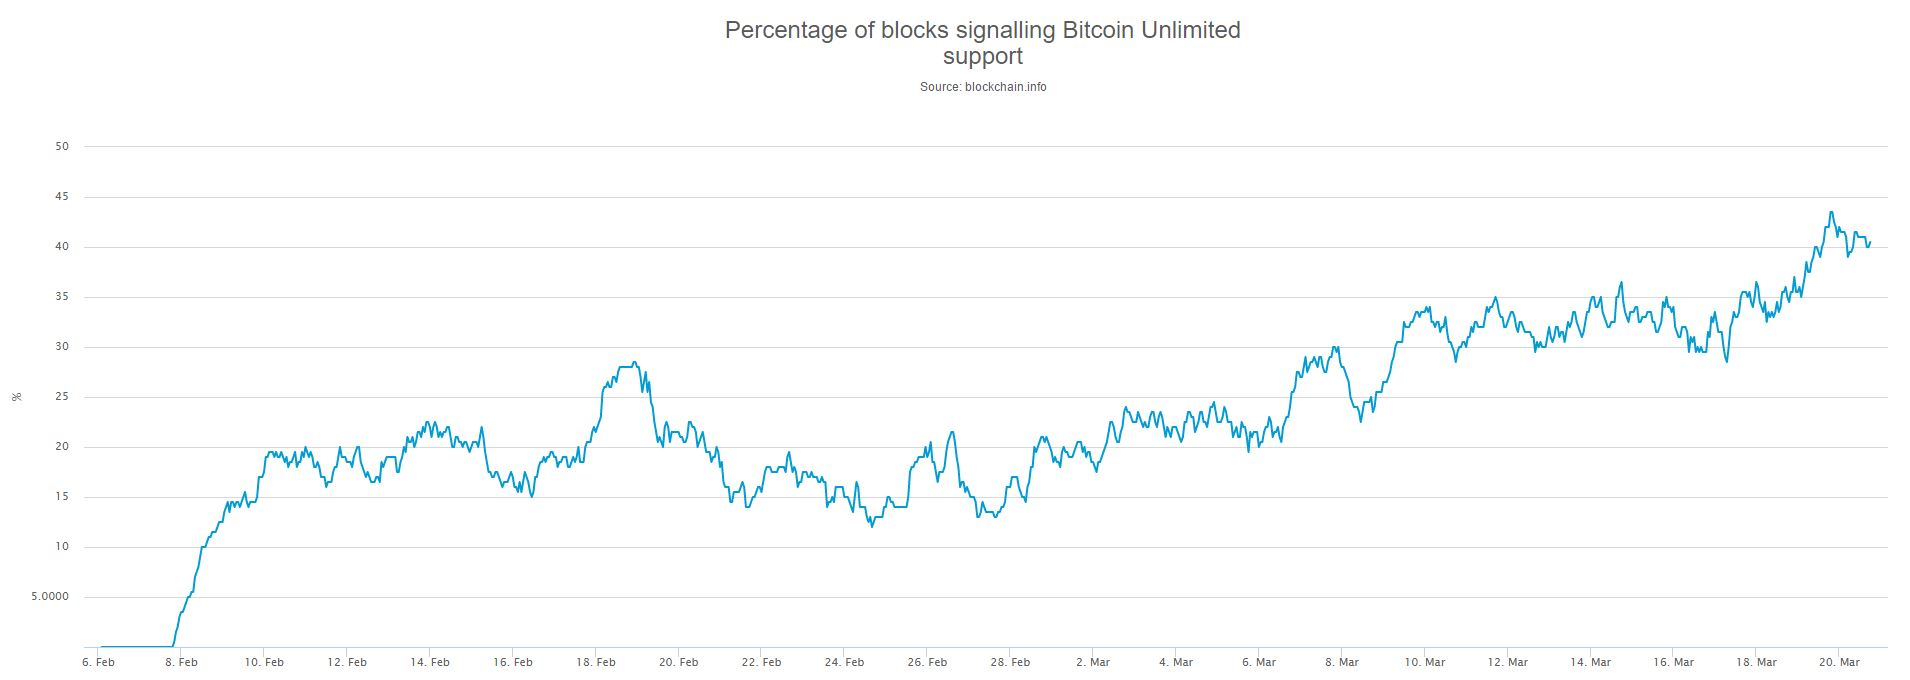 Blocks Signalling Bitcoin Unlimited